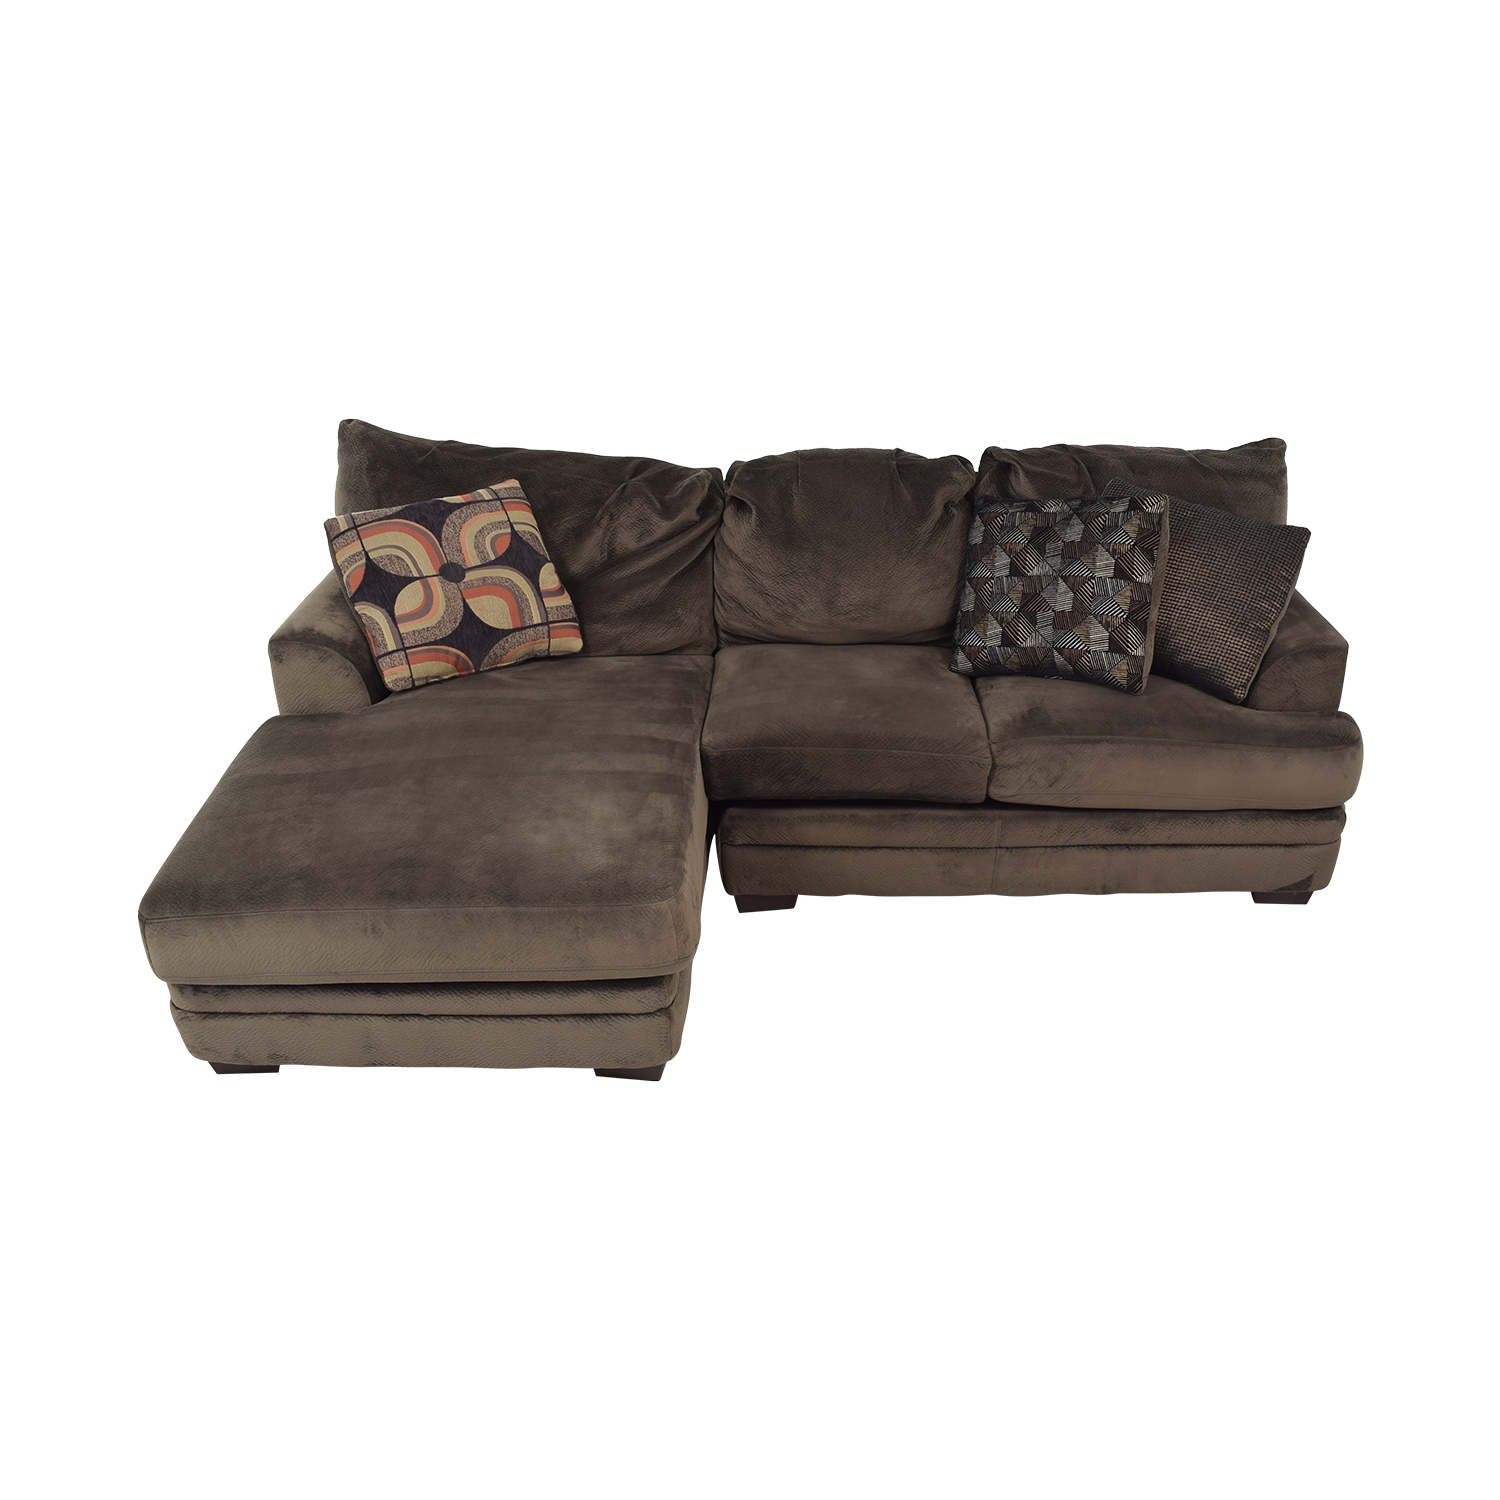 buy Macy's Mocha Sectional Couch Macy's Sofas